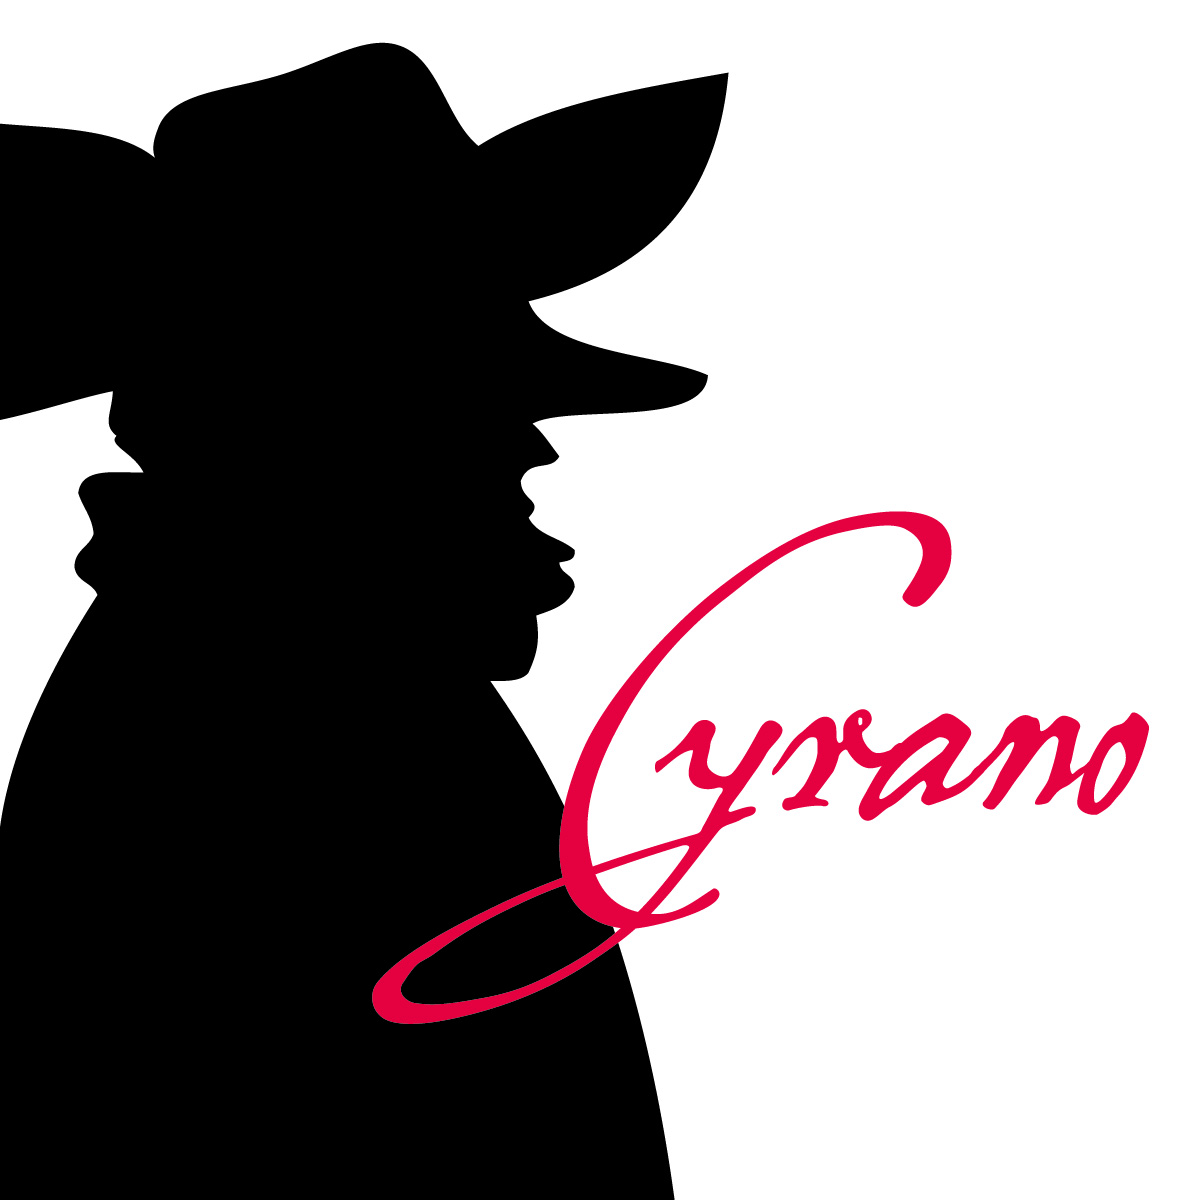 Cyrano d finition c 39 est quoi for Balcon meaning